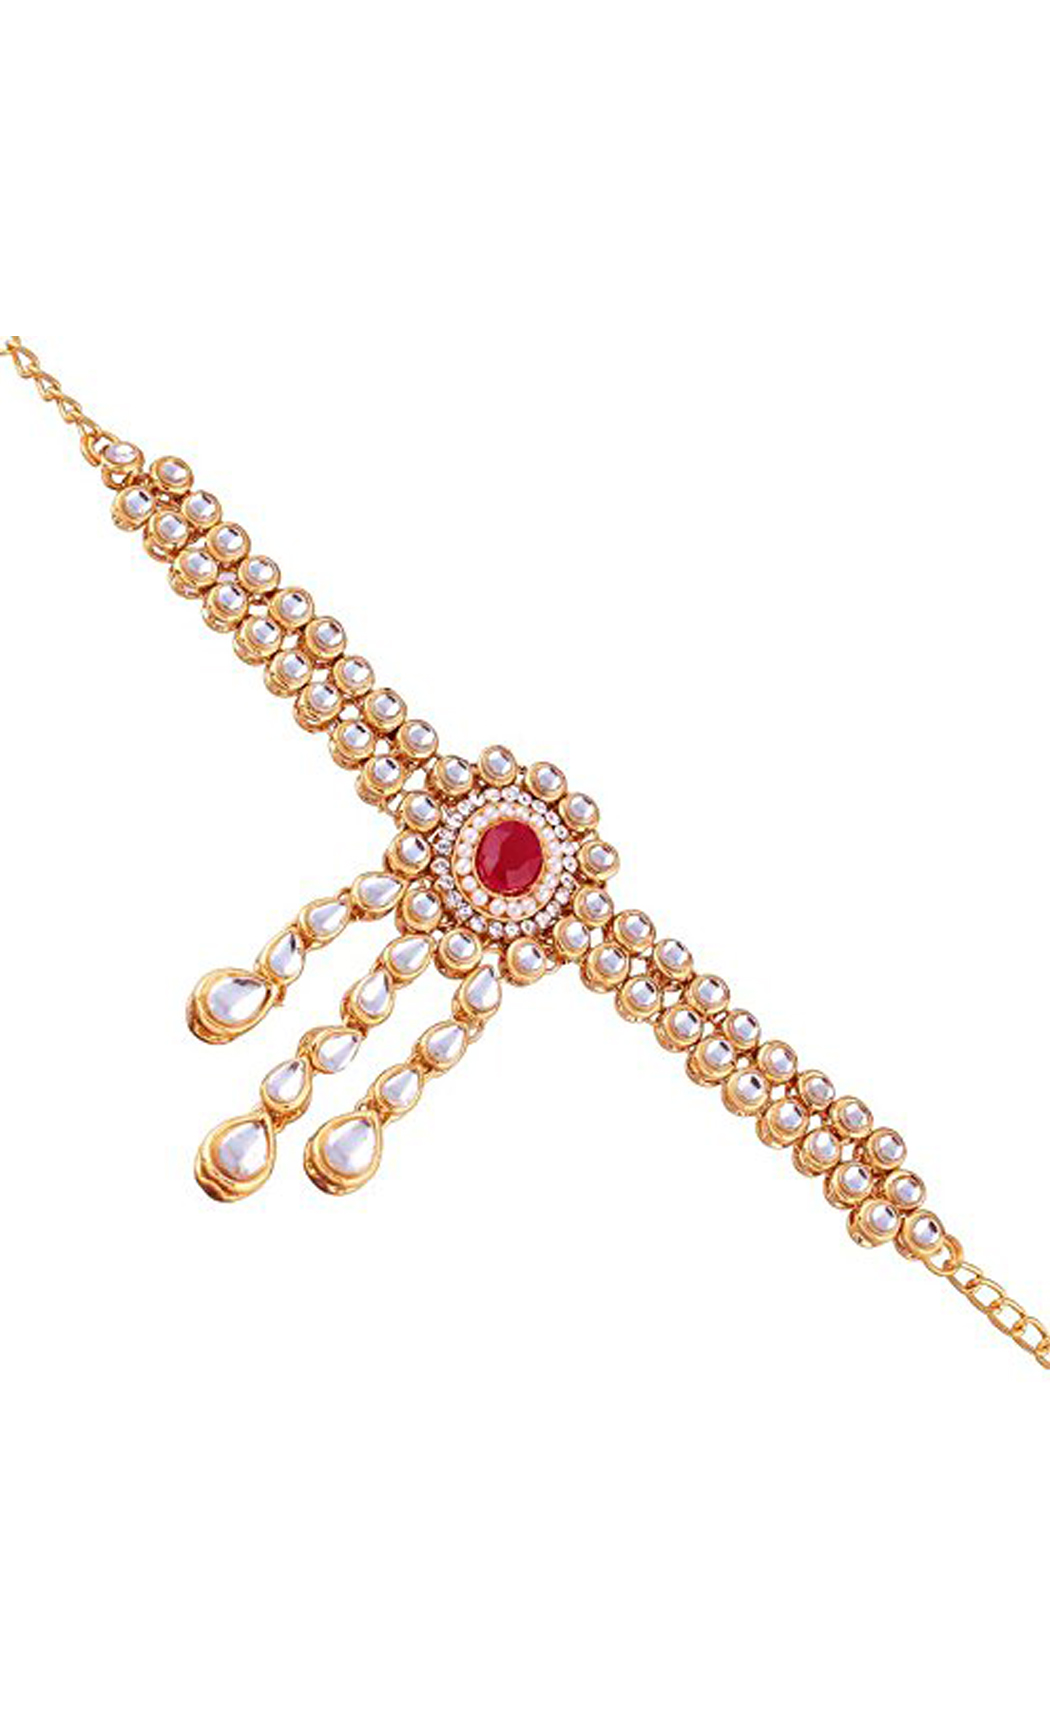 Gold Bajuband Kundan and Red Stone | Wedding Jewellery and Bridal Fashion Jewelry Collection | Buy Online